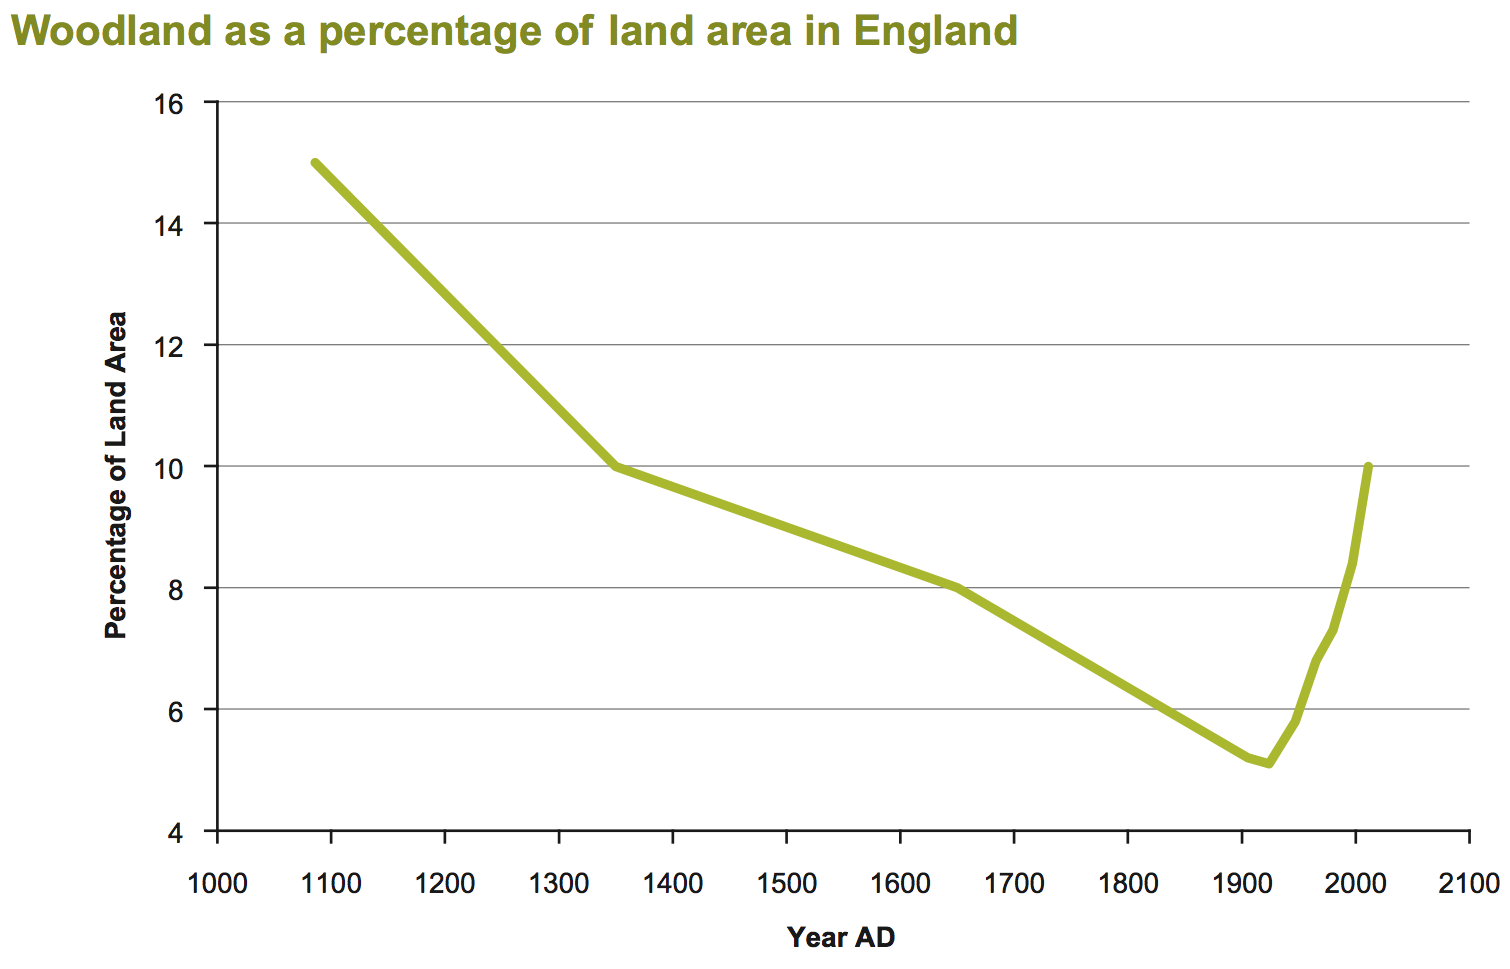 Woodland_as_a_percentage_of_land_area_in